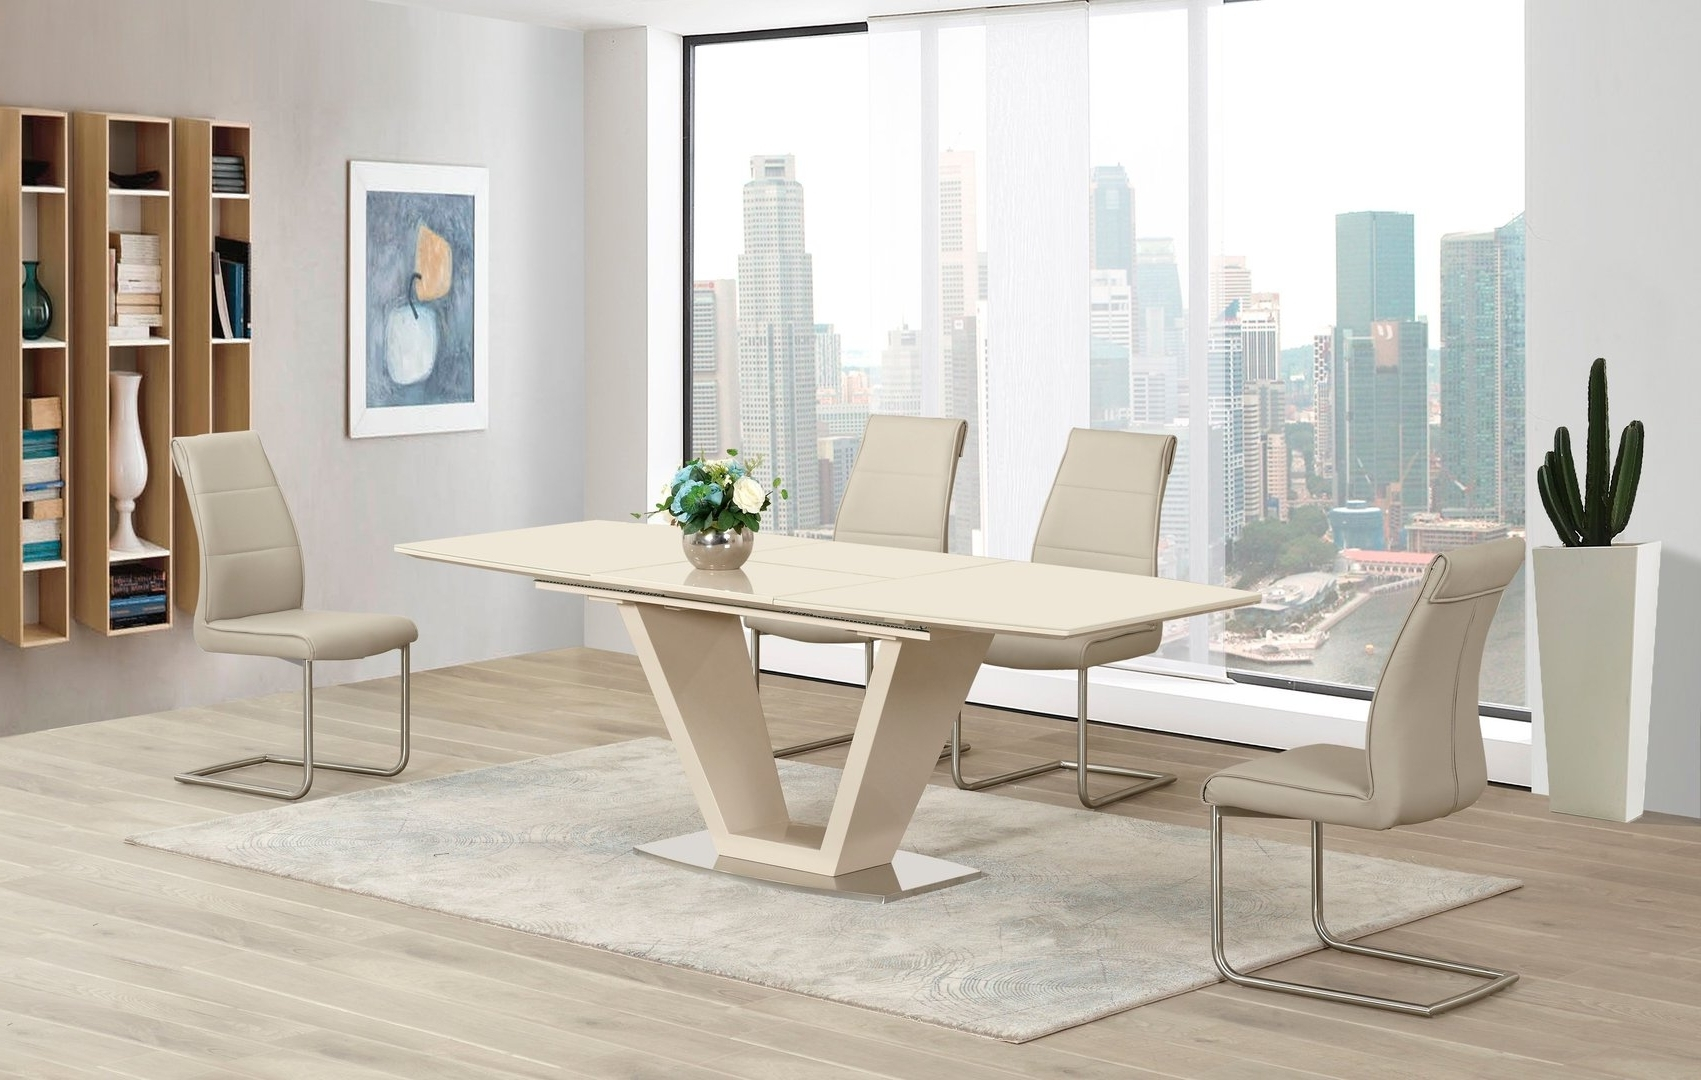 Widely Used Hi Gloss Dining Tables Within Gloss Dining Table Sets – Castrophotos (View 15 of 25)